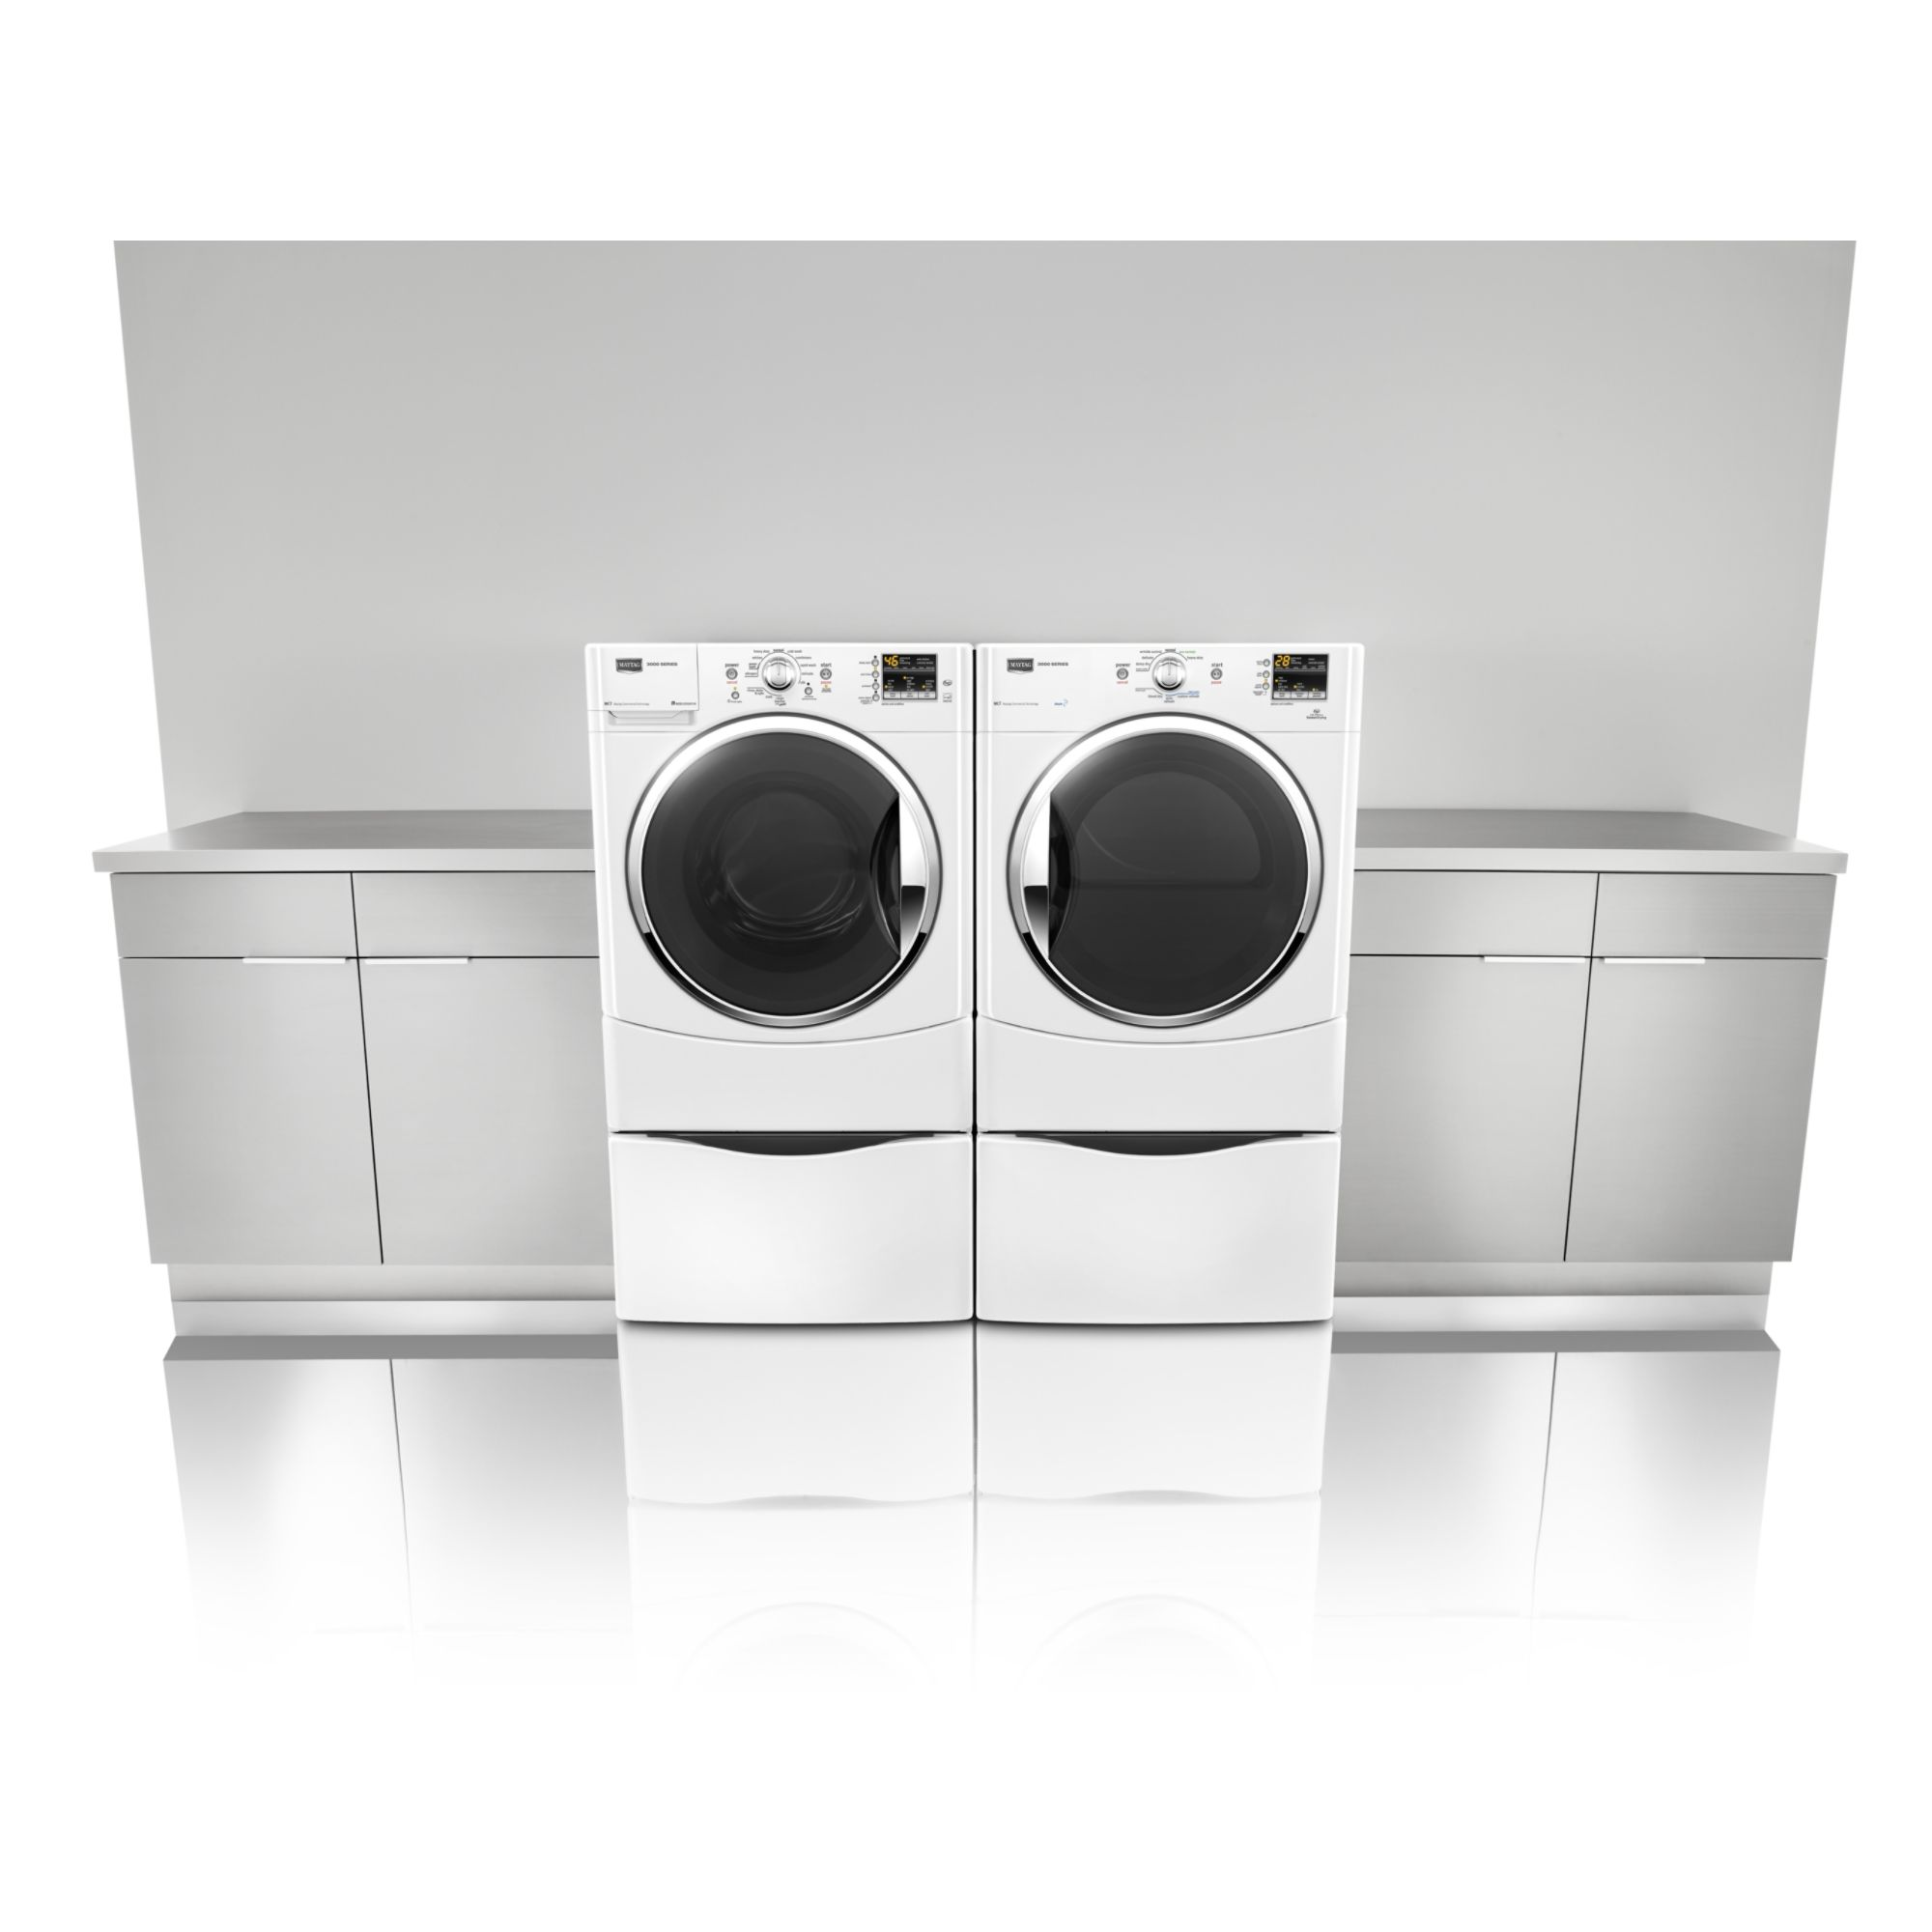 Maytag 6.7 cu. ft. Steam Electric Dryer - White